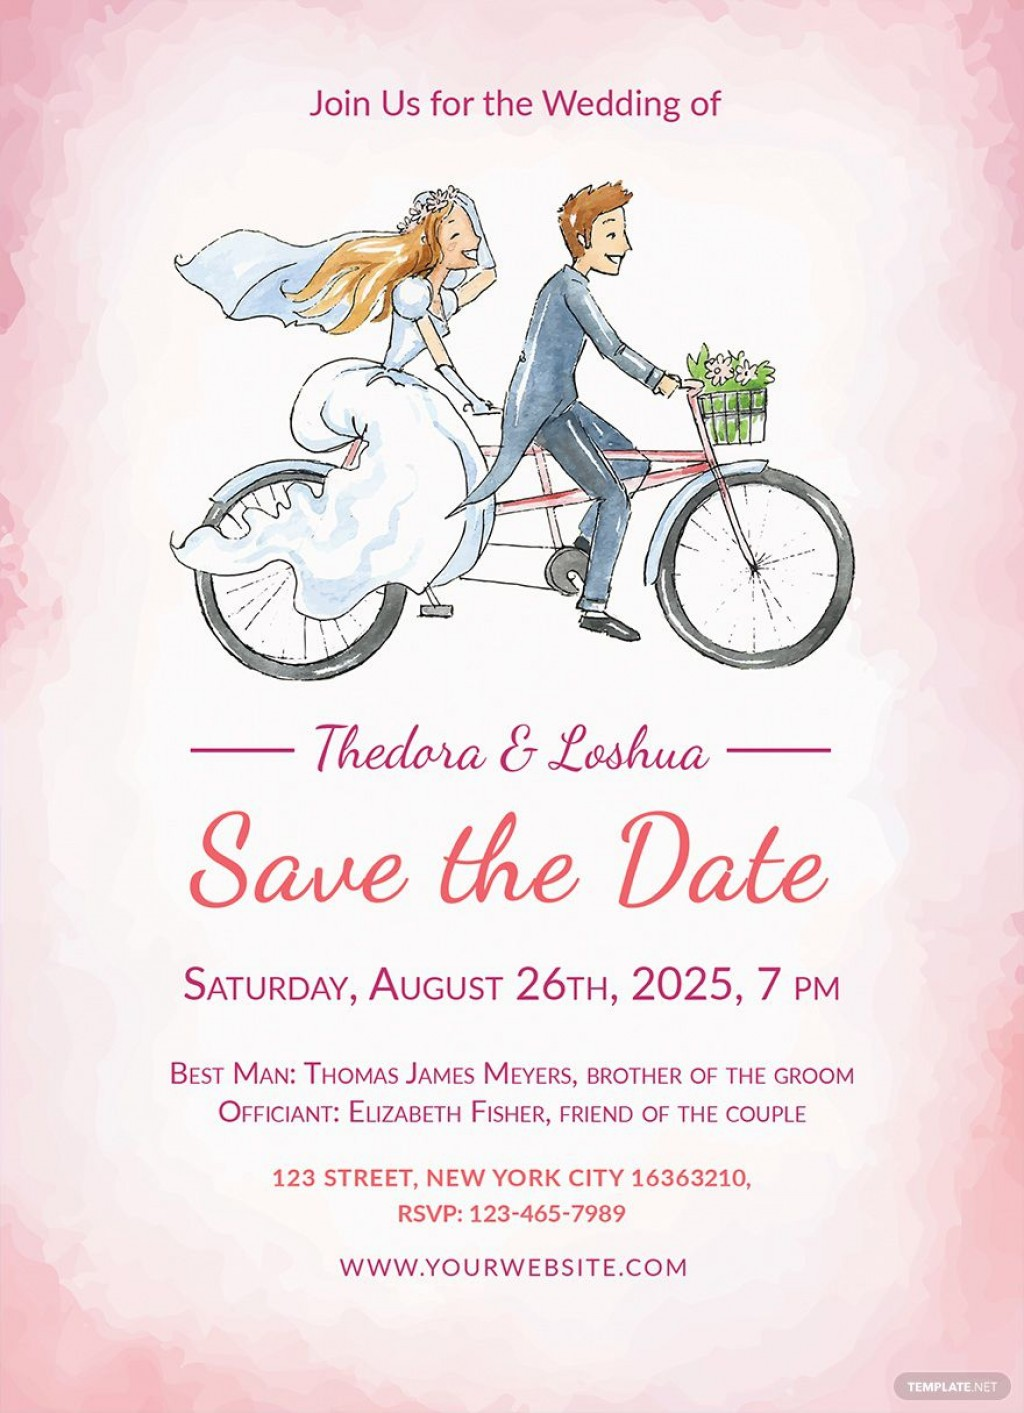 009 Unforgettable Free Wedding Invitation Template Printable Image  For Microsoft Word MacLarge